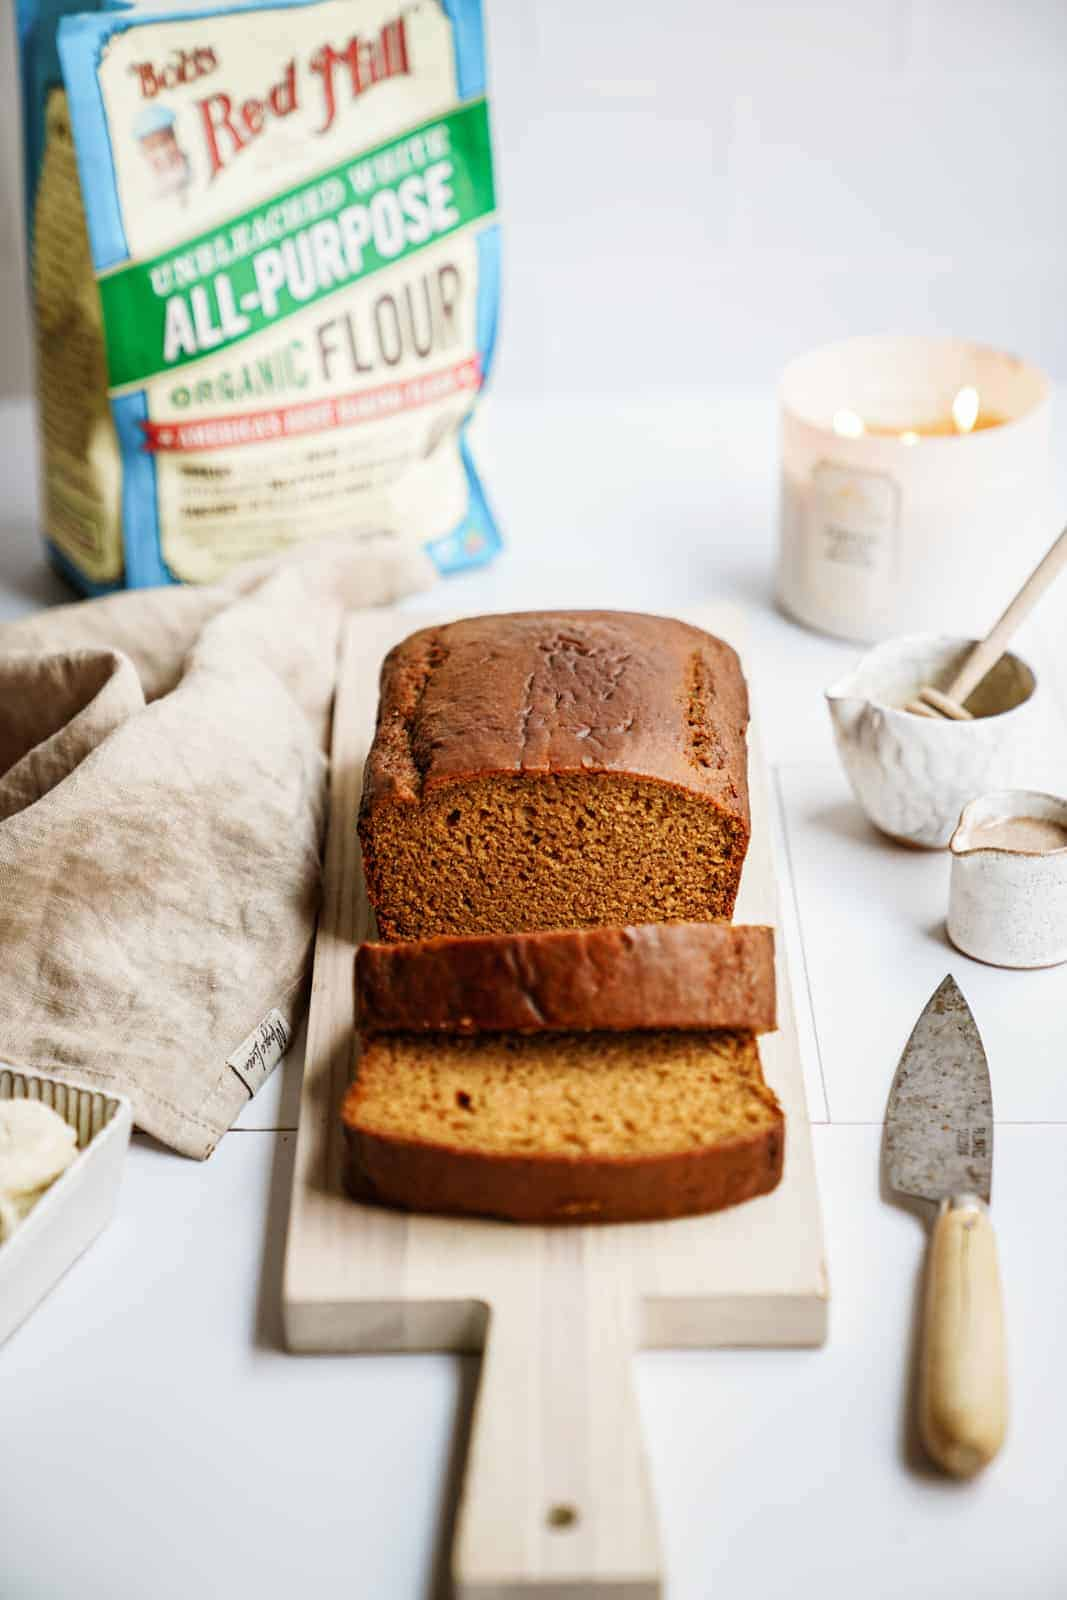 vegan pumpkin bread with bag of Bob's Red Mill flour in the back.